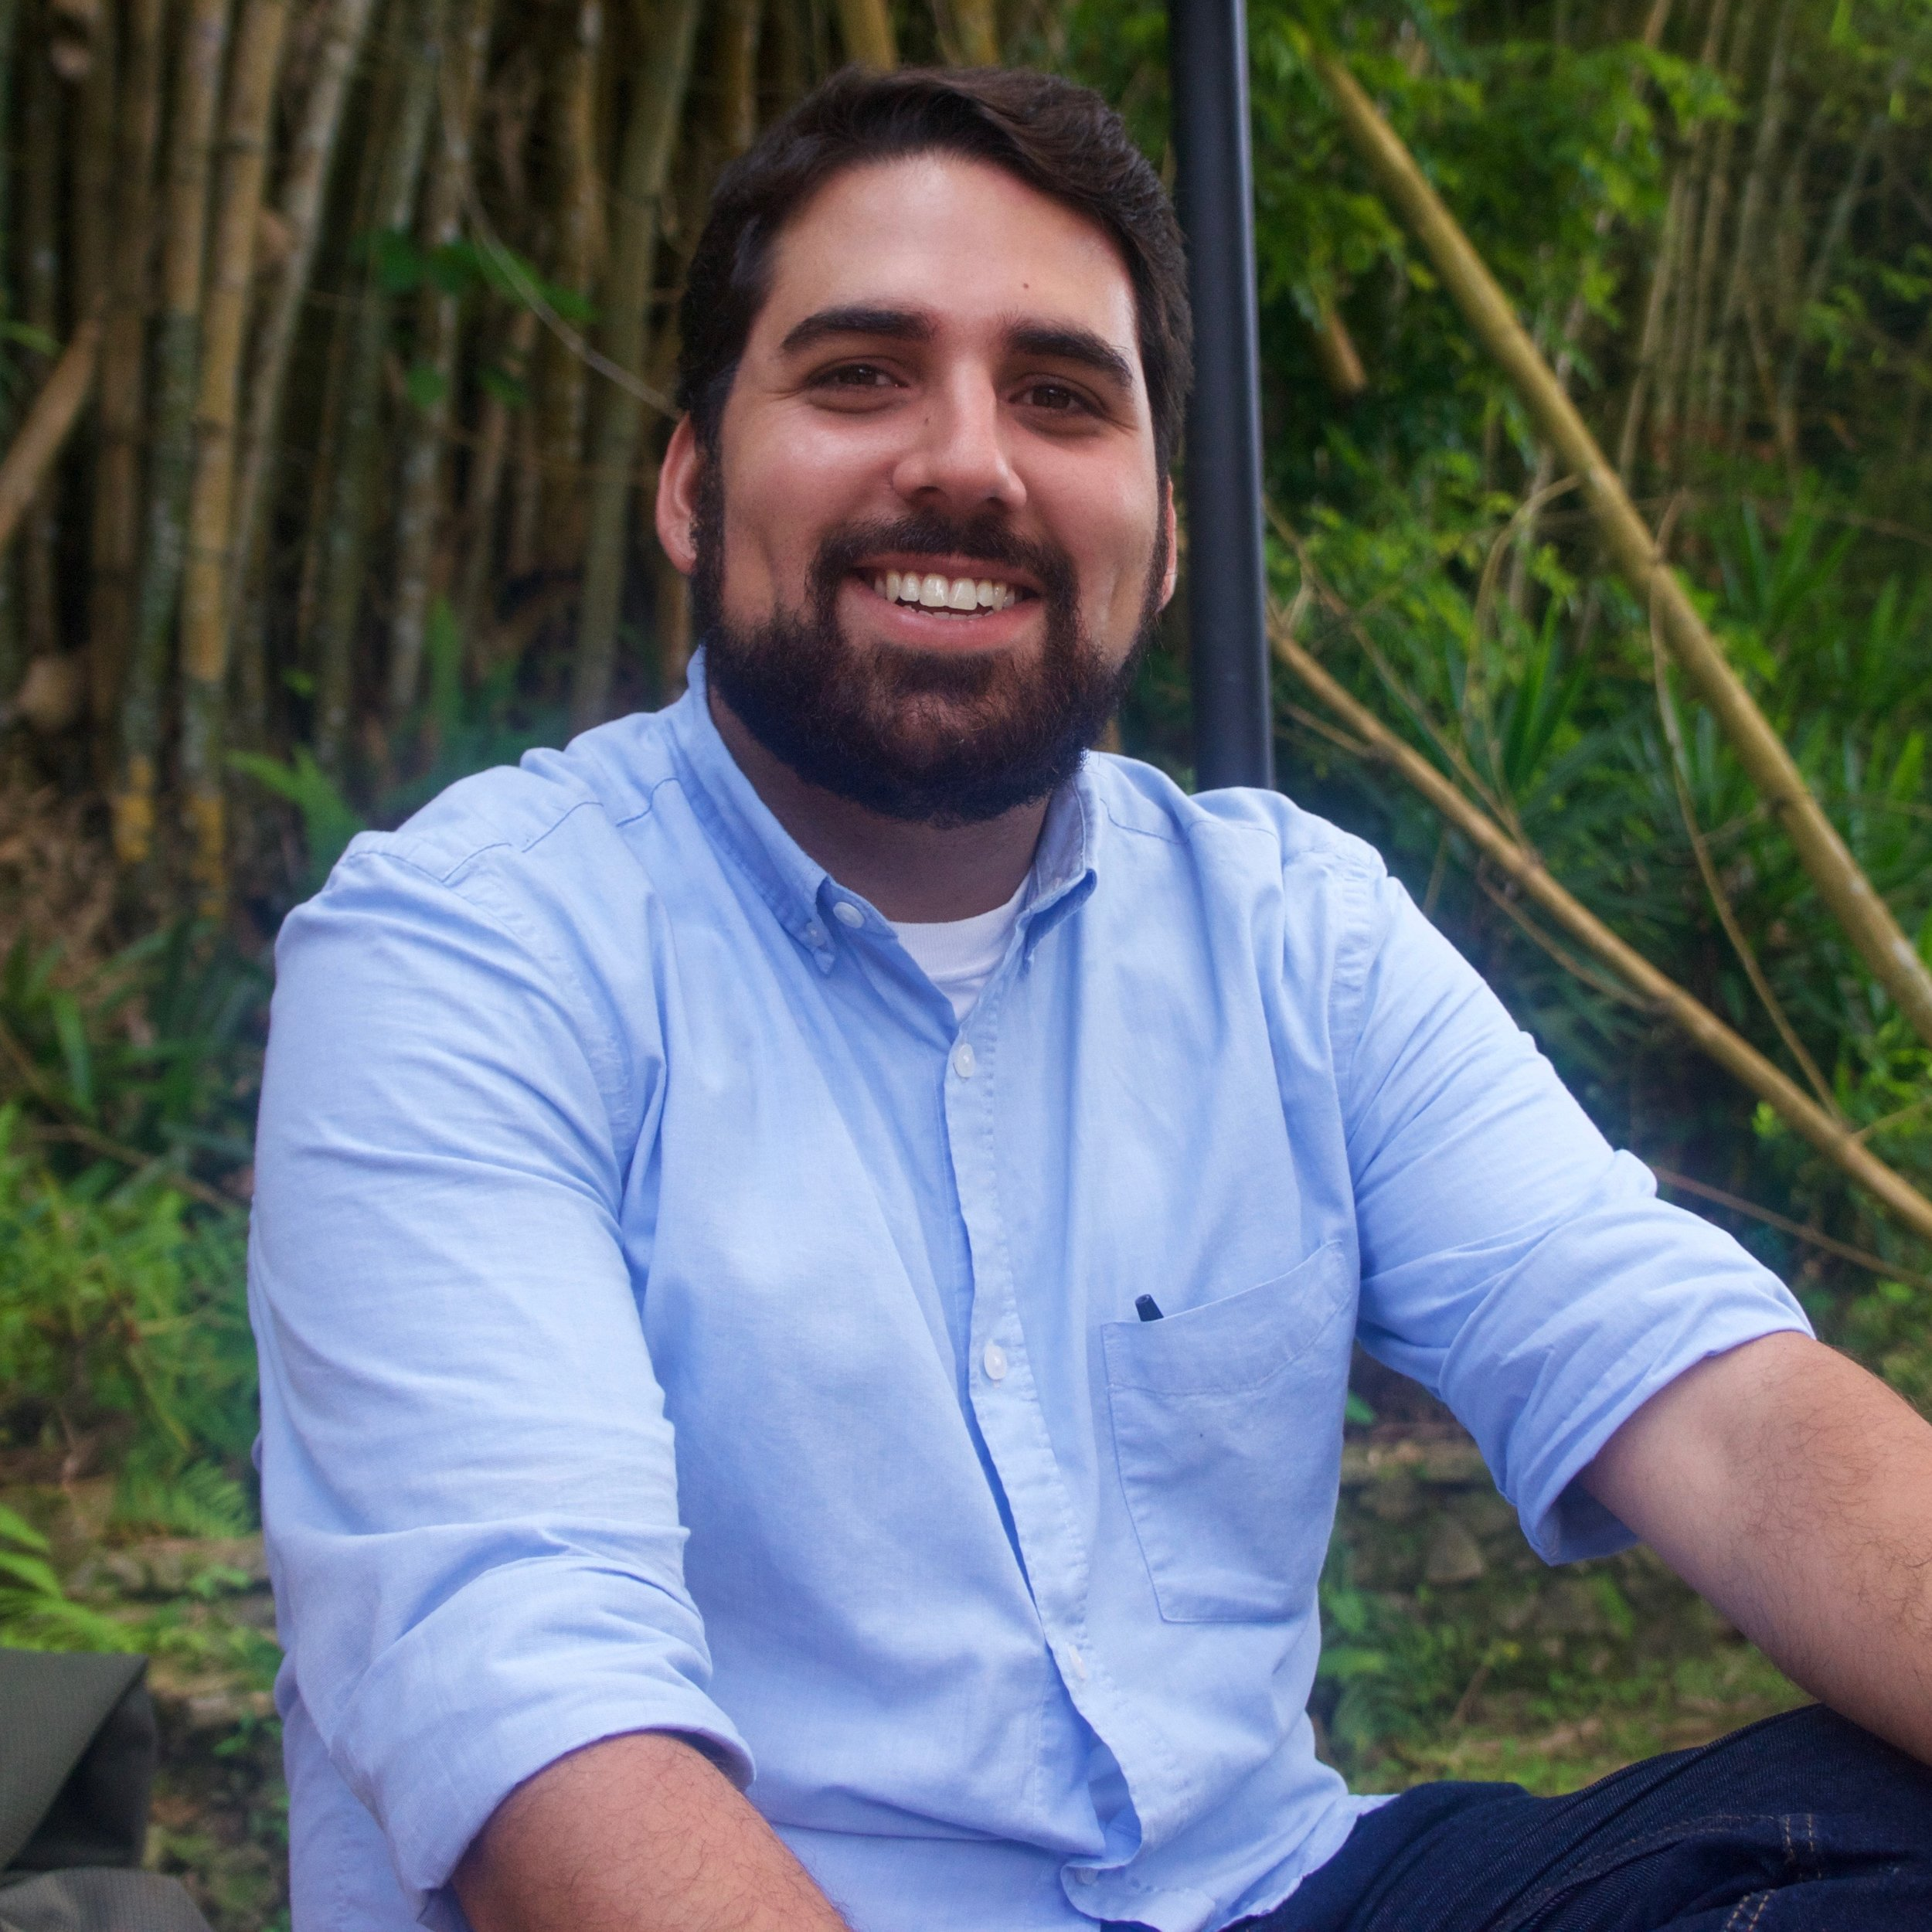 - Carlos Chacon CupelloKratos Experiences USAExperiential Learning and Leadership